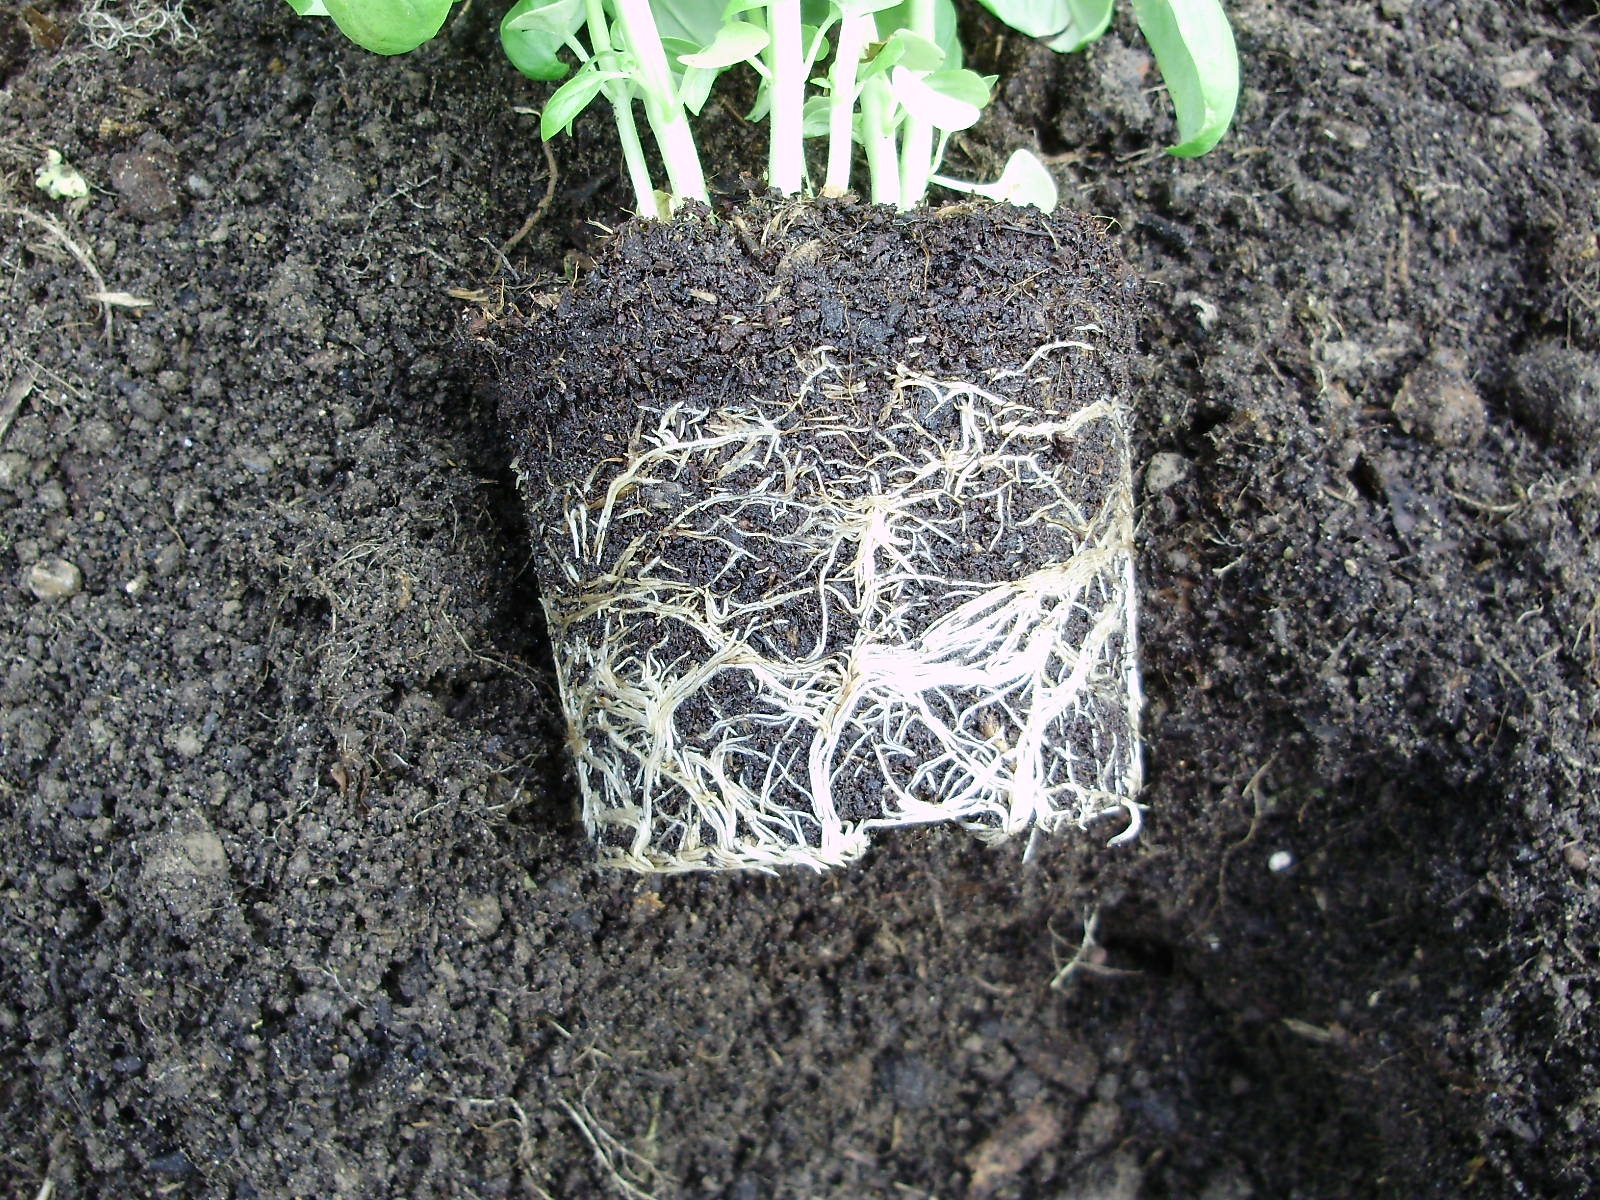 11. Pot nicely filled - roots ready to explore further